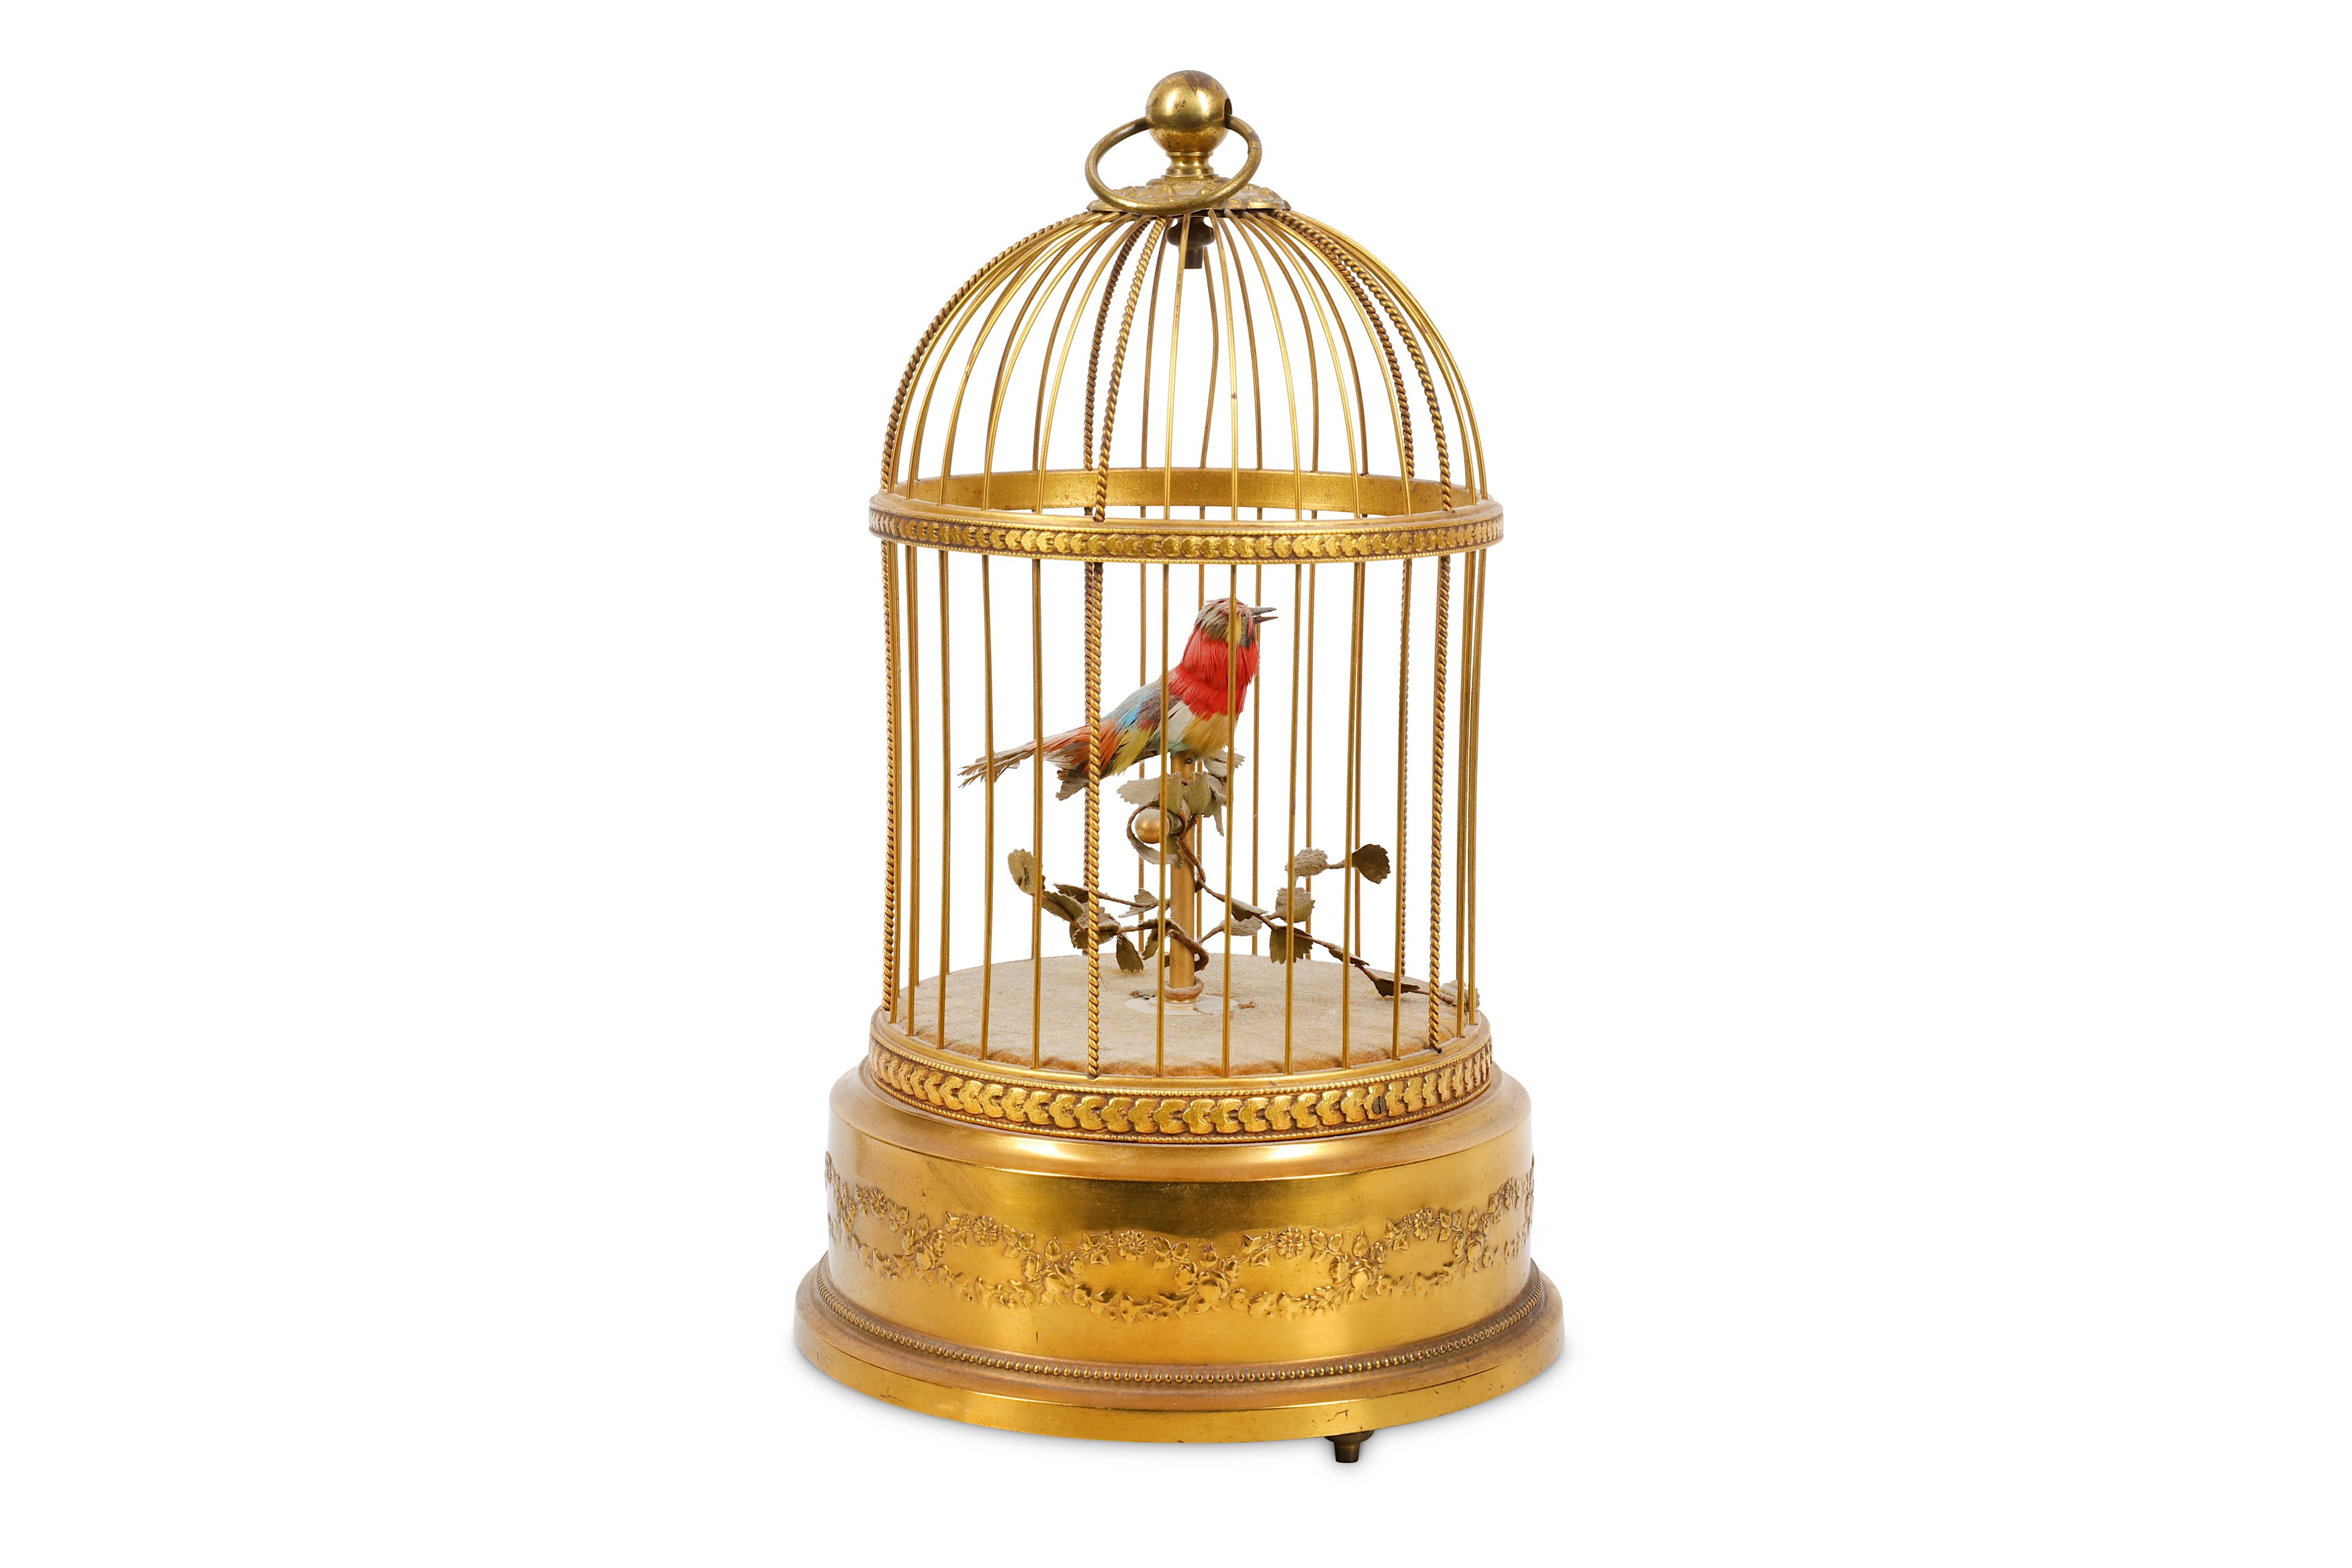 Lot 7 - A SMALL EARLY 20TH CENTURY FRENCH GILT METAL SINGING BIRD IN CAGE AUTOMATON